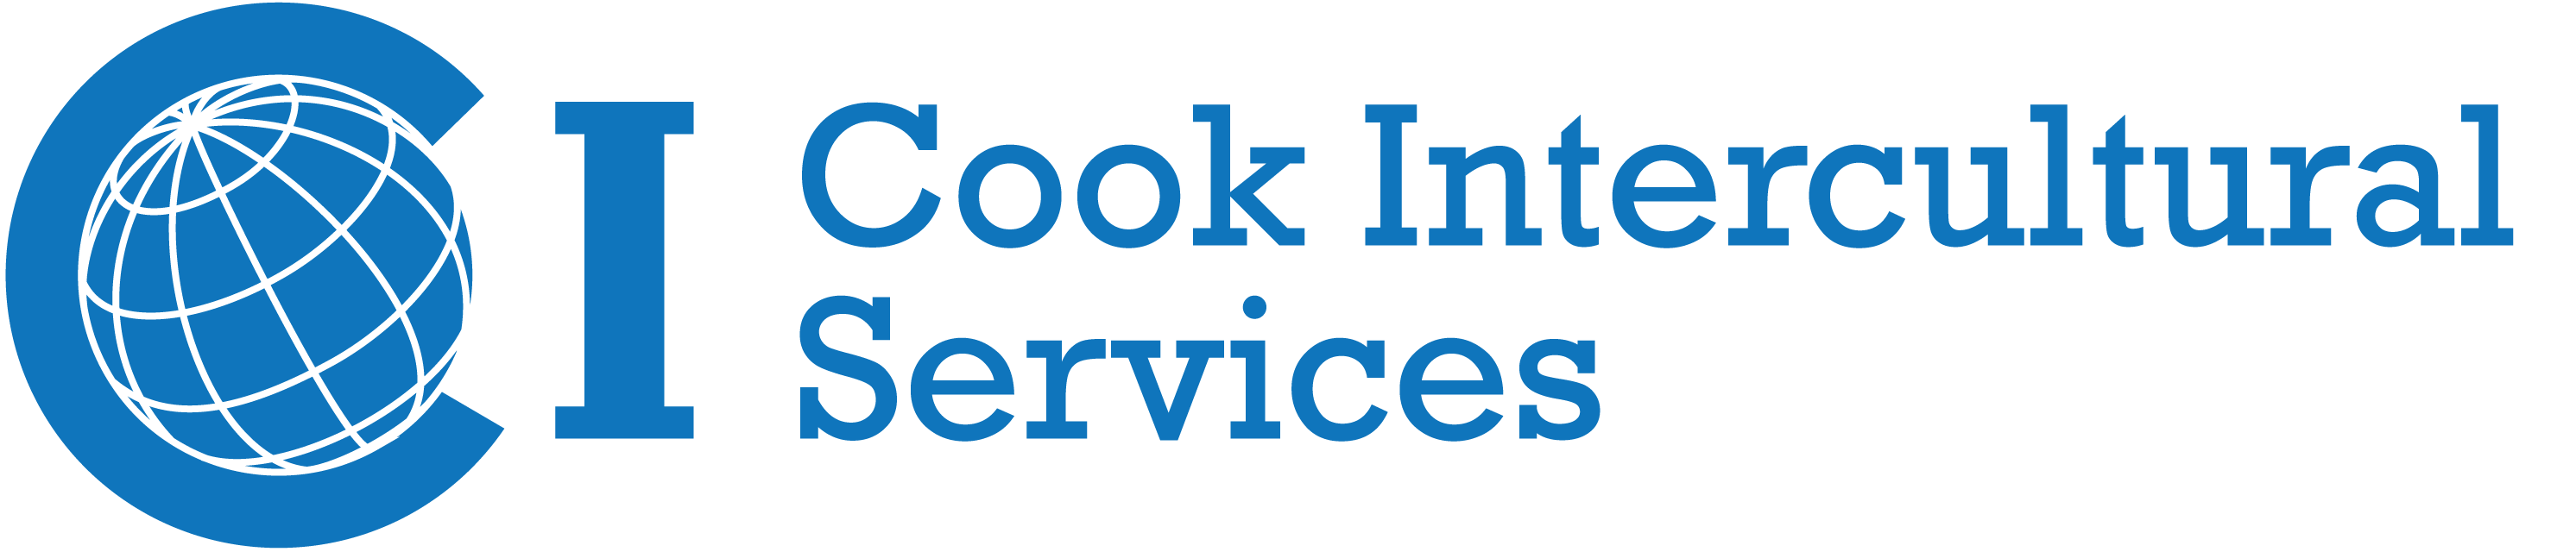 Cook Intercultural Services